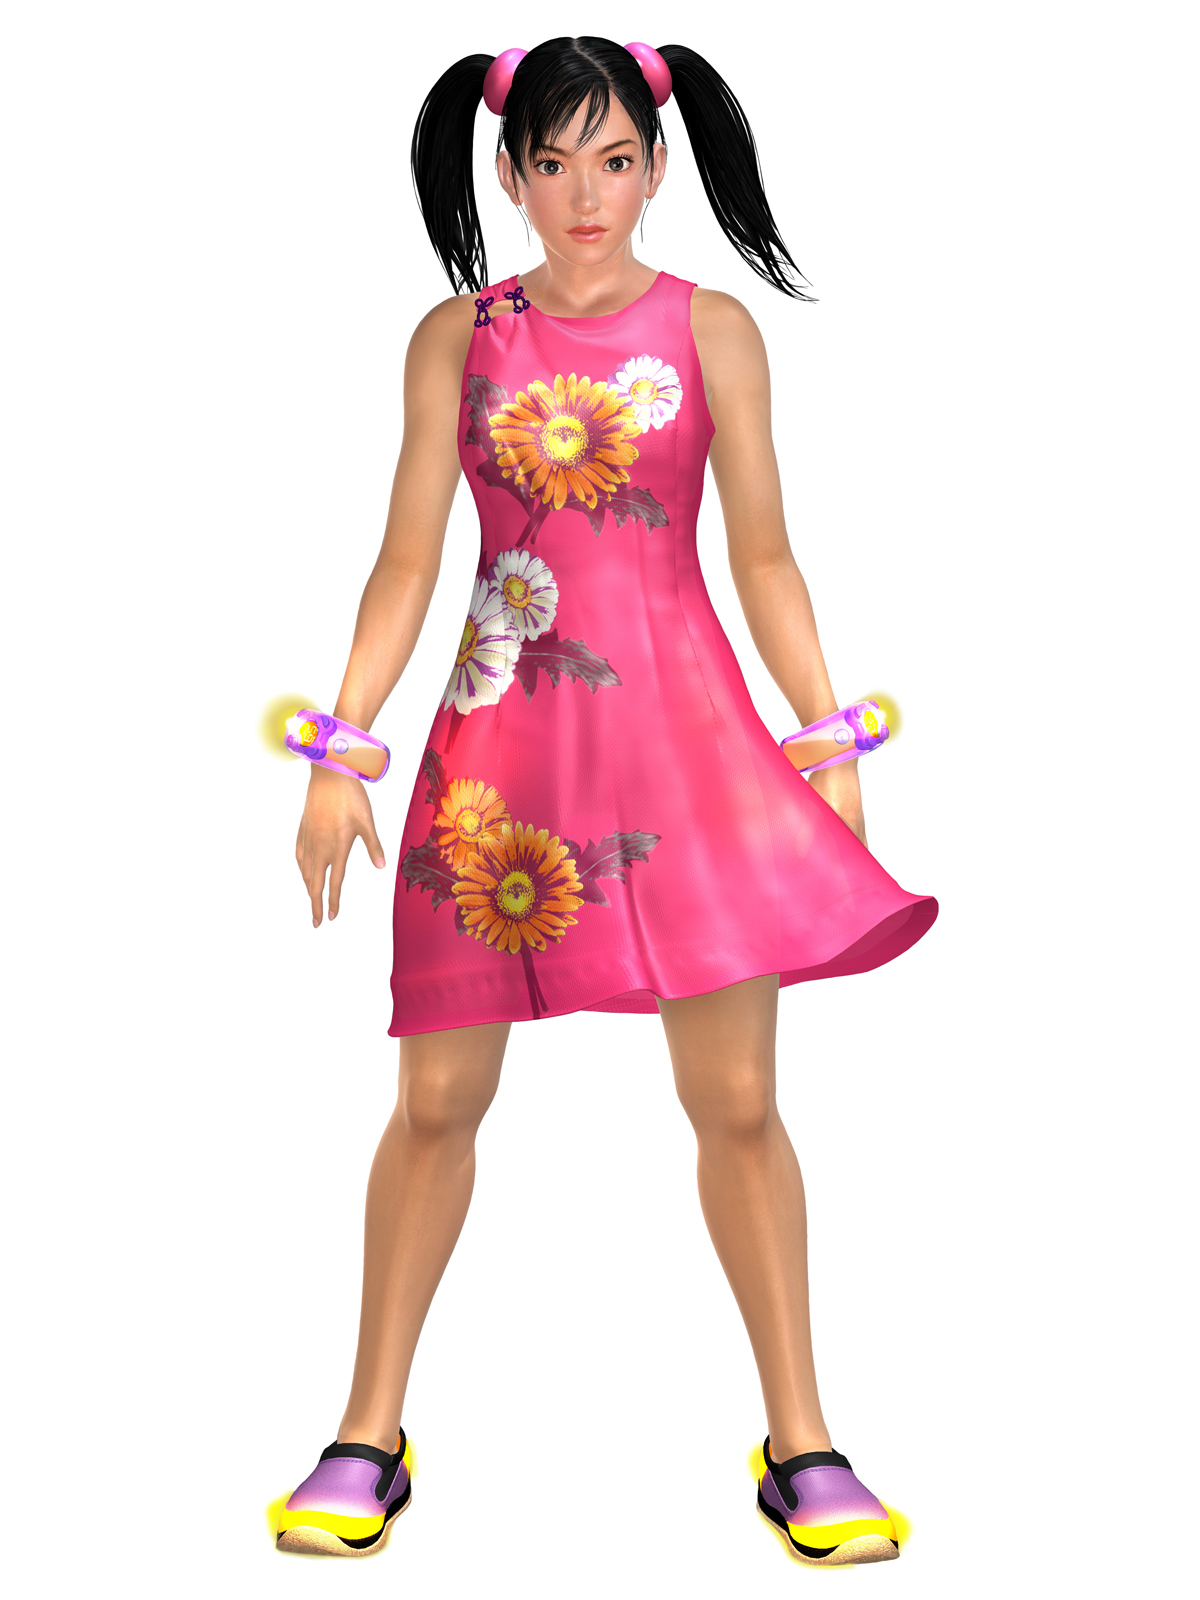 Ling Xiaoyu - The Tekken Wiki - Tekken 6, Tekken 5, Tekken 3, and more